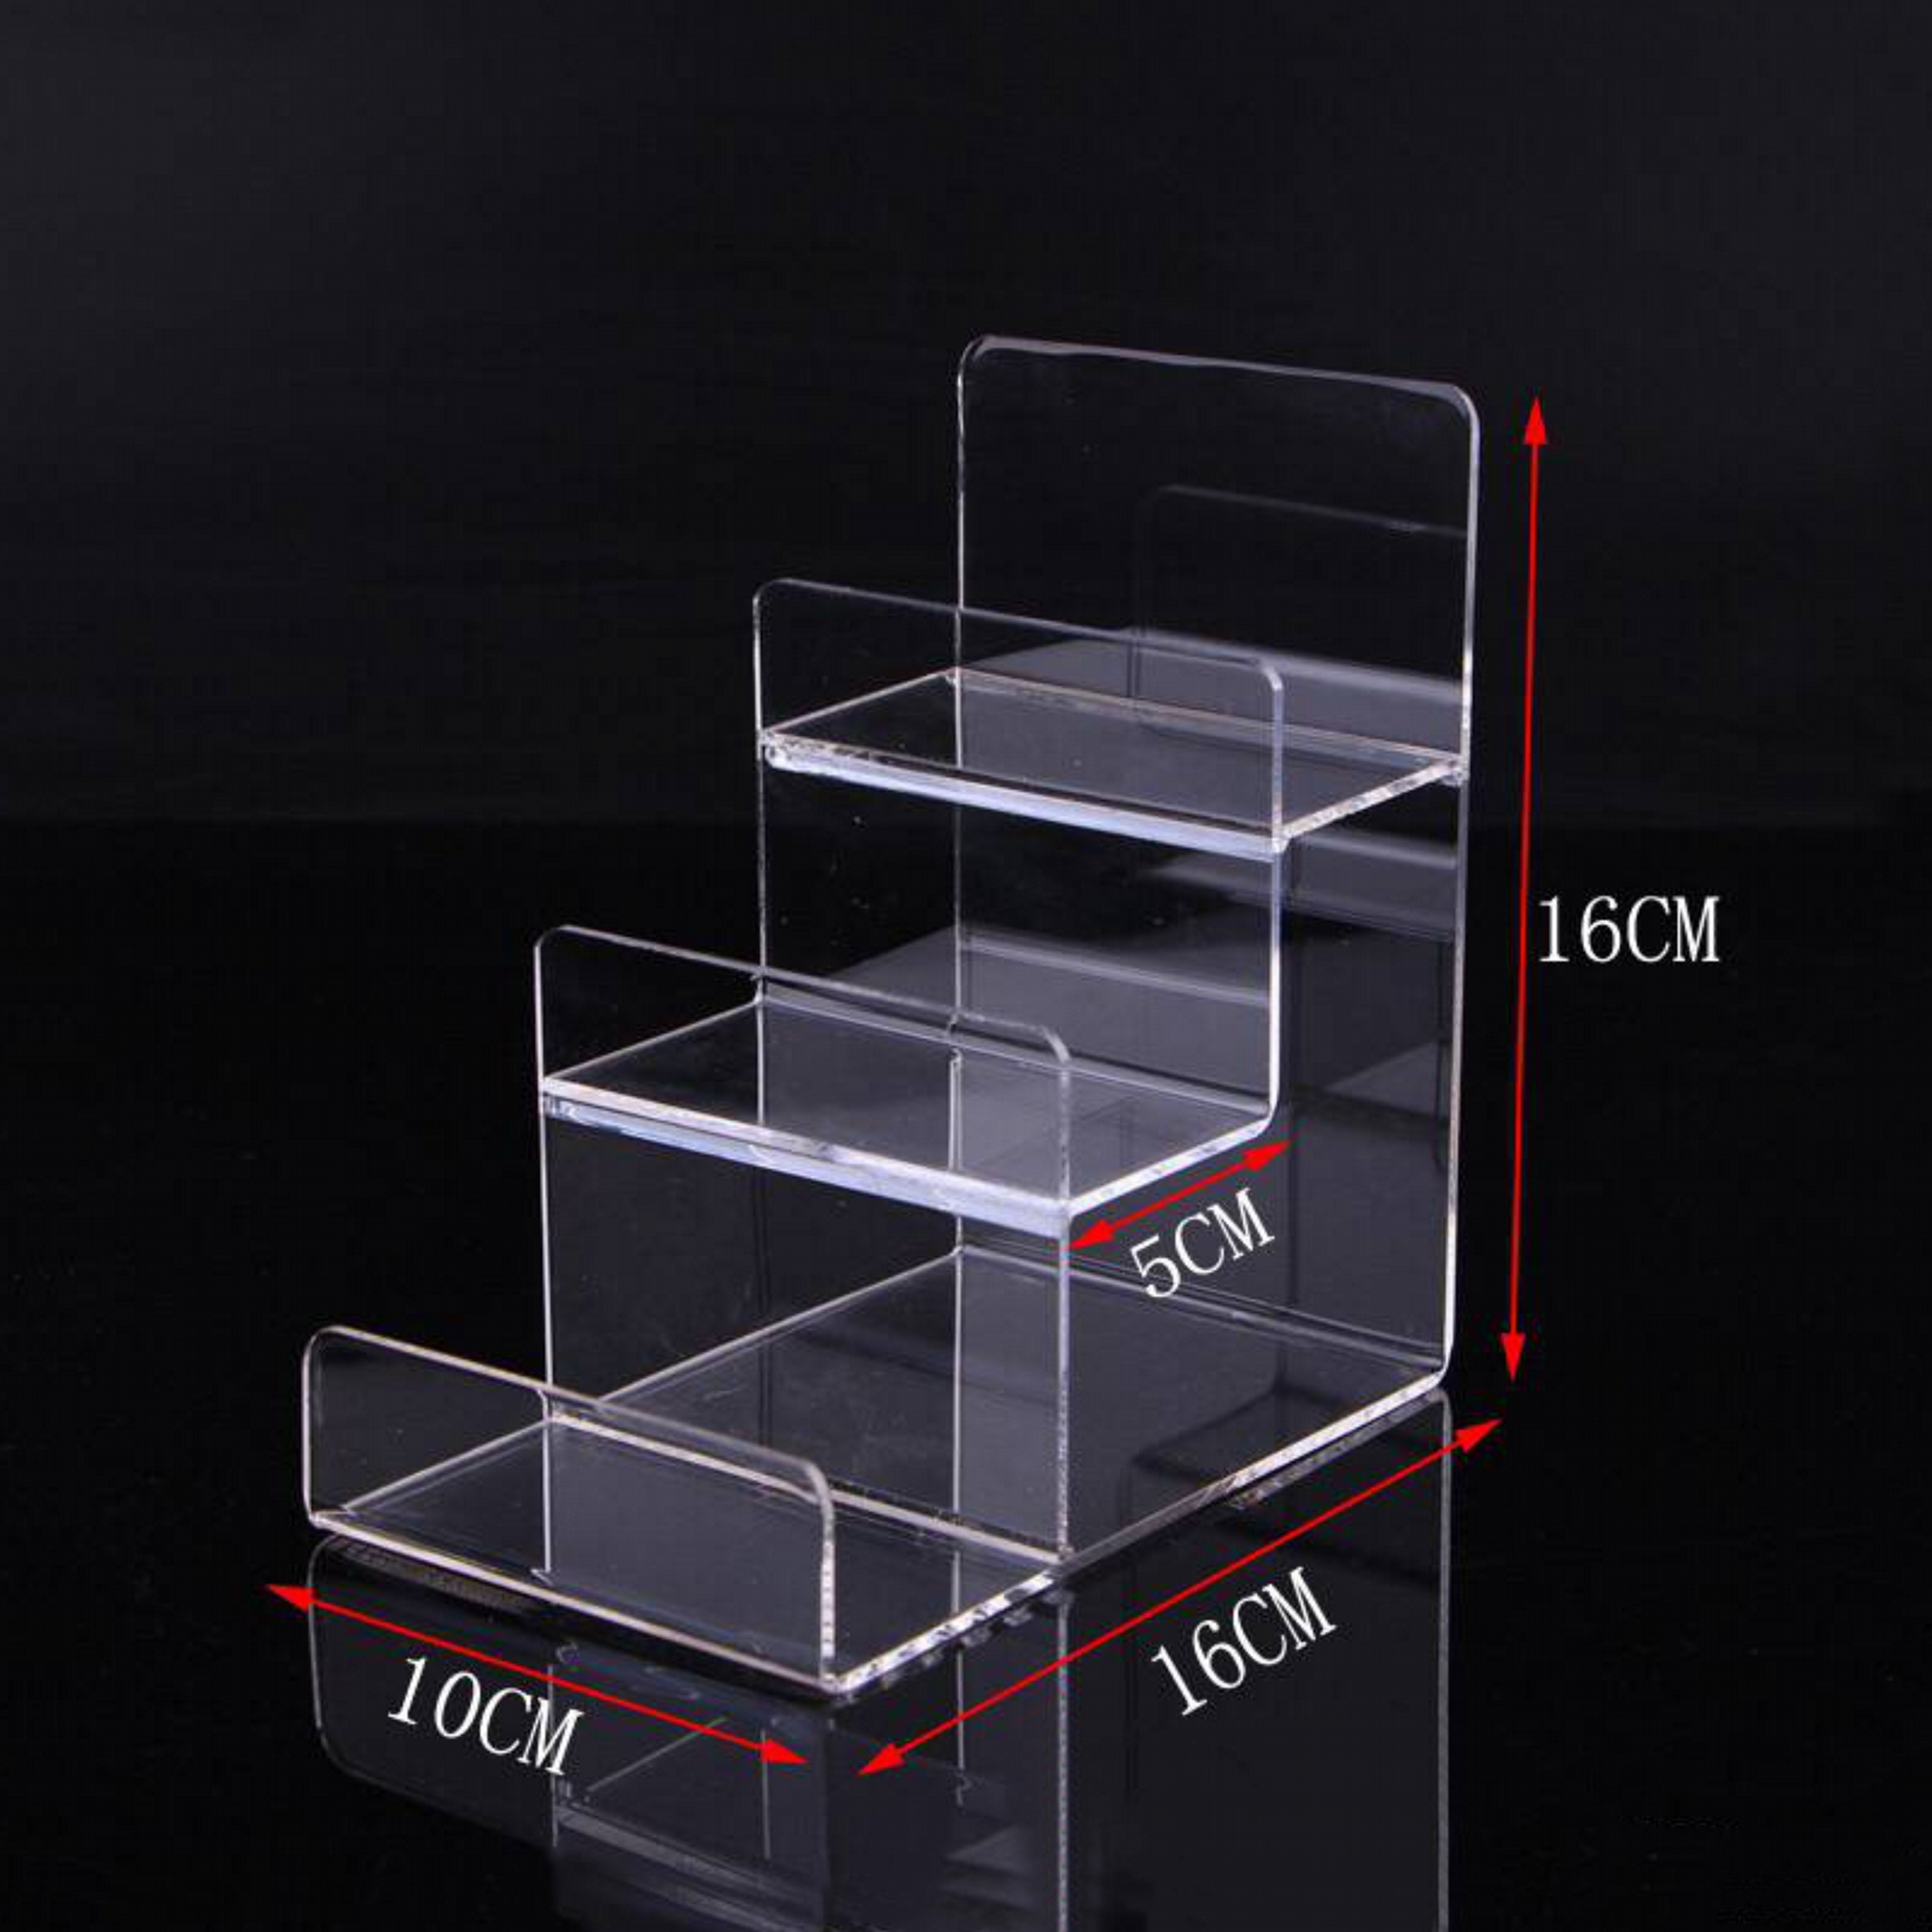 We offer a wide range of Acrylic Risers to accent, raise, highlight, and make attractive displays in your store, business, or in your home.  Whether you are looking for small Acrylic Risers to hold small items such as figurines, jewelry, and model cars or large risers we have a size that will work for you. We also offer a wide variety of other attractive Clear Acrylic Display Pedastels, Acrylic Stairways, and Tiered Acrylic Displays to fit most any need.  We carry over 100 different sizes and styles of acrylic risers in stock for immediate shipment.